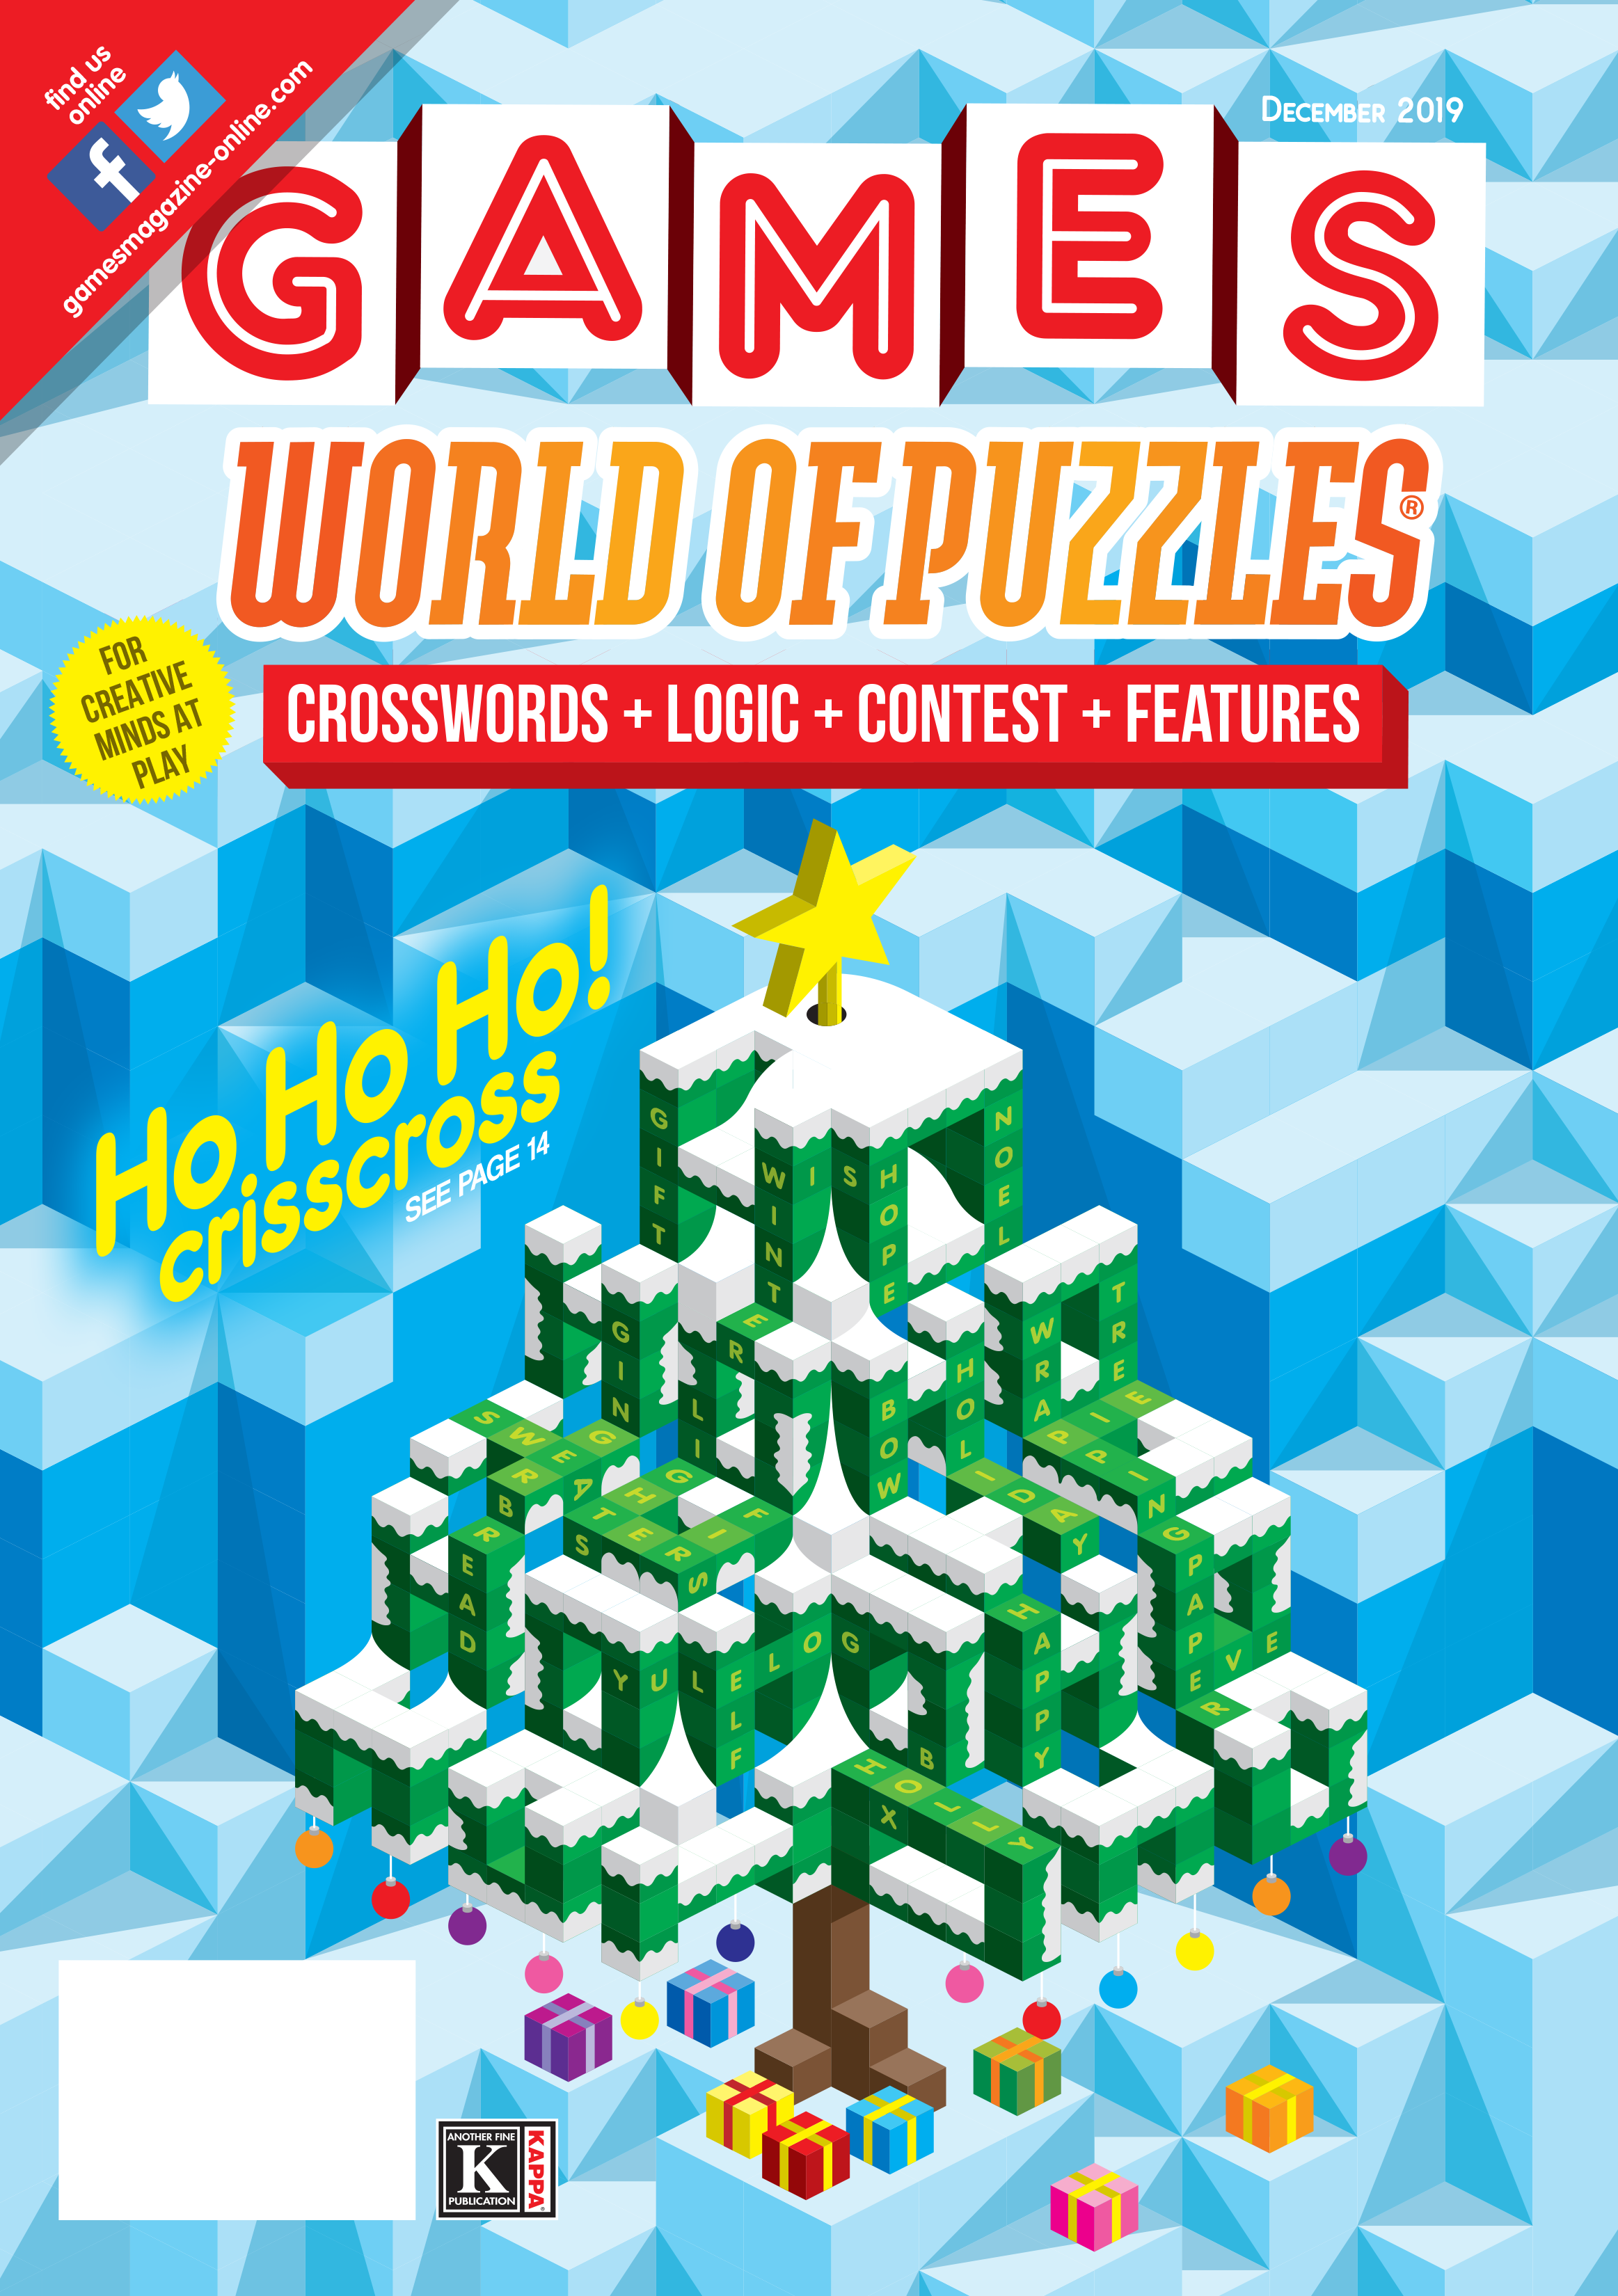 Blue Green Online >> Games World Of Puzzles December 2019